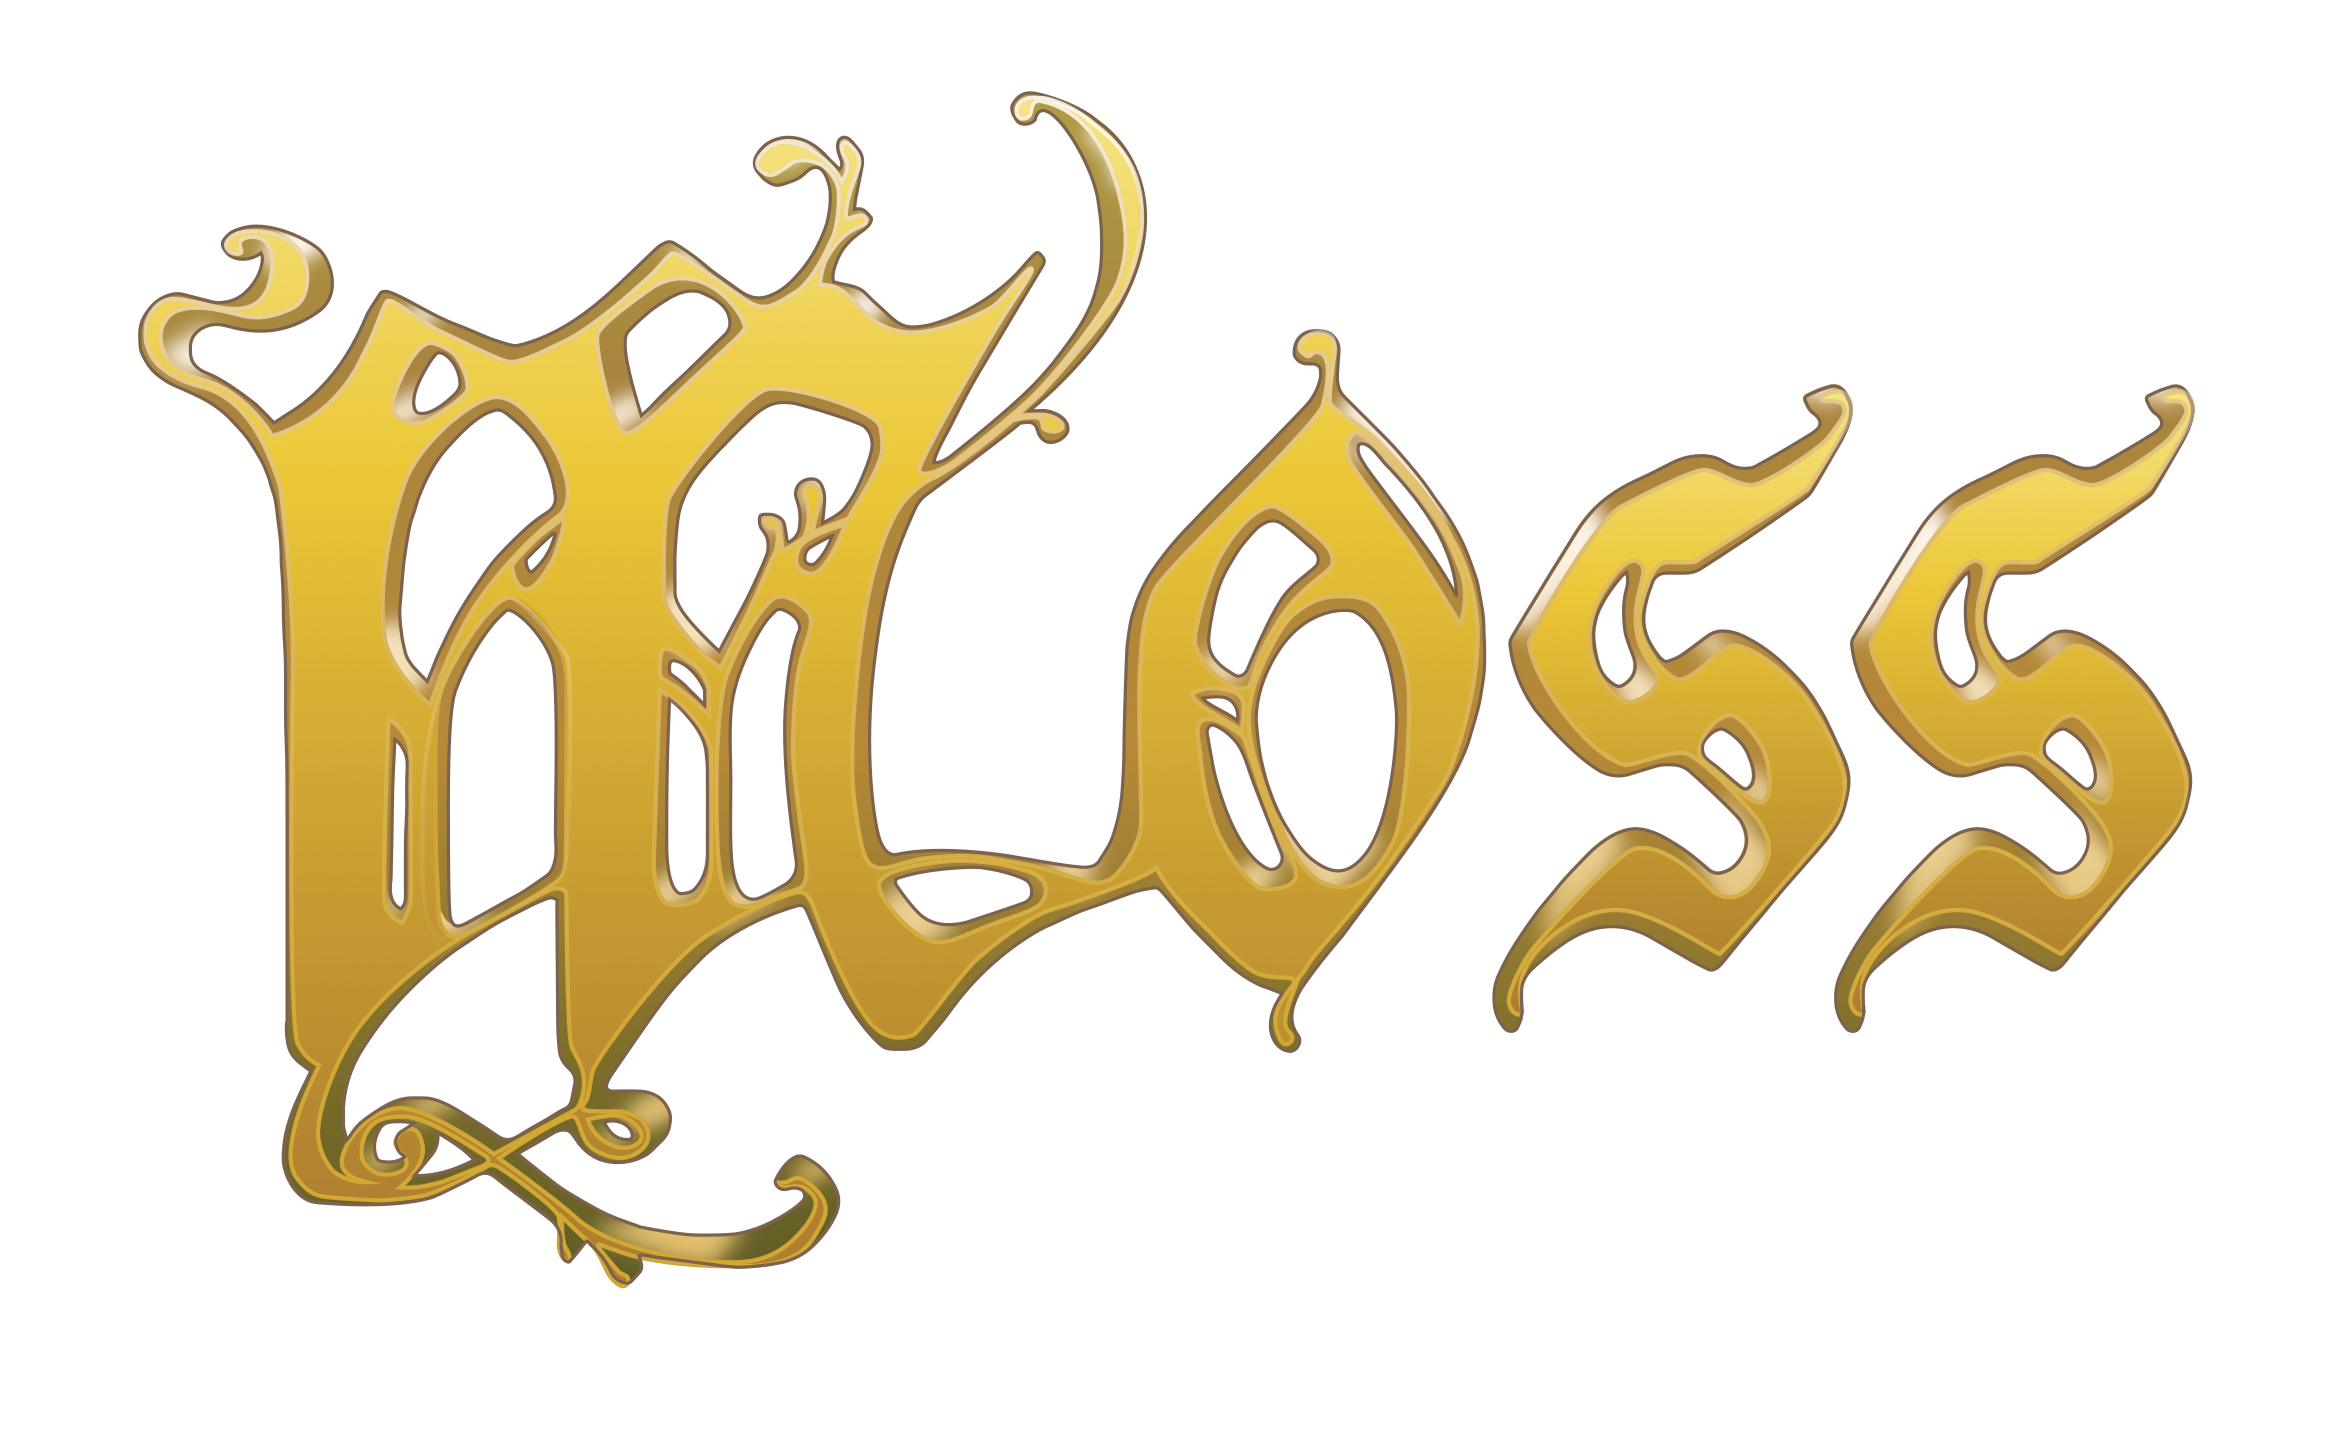 Moss logo png. Polyarc s justifies your